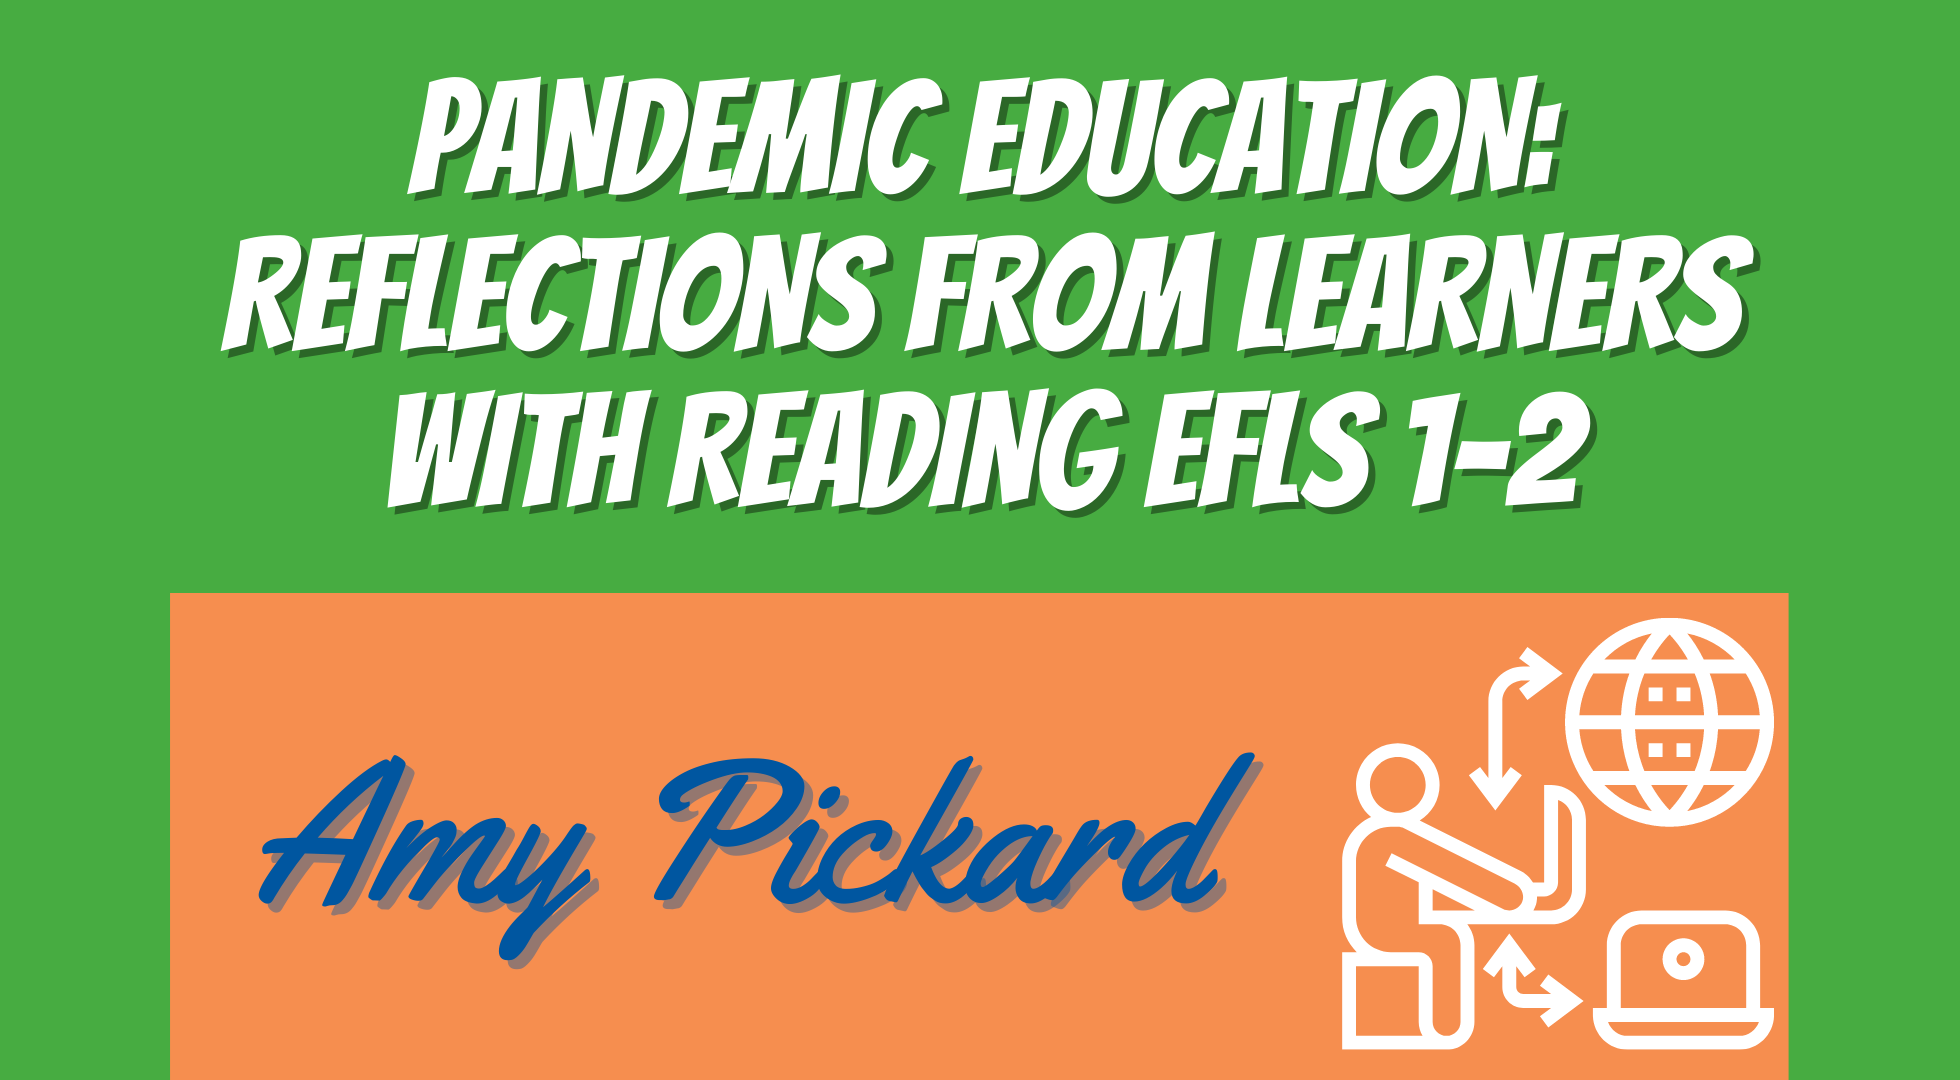 Pandemic education: Reflections from learners with reading EFLs 1-2